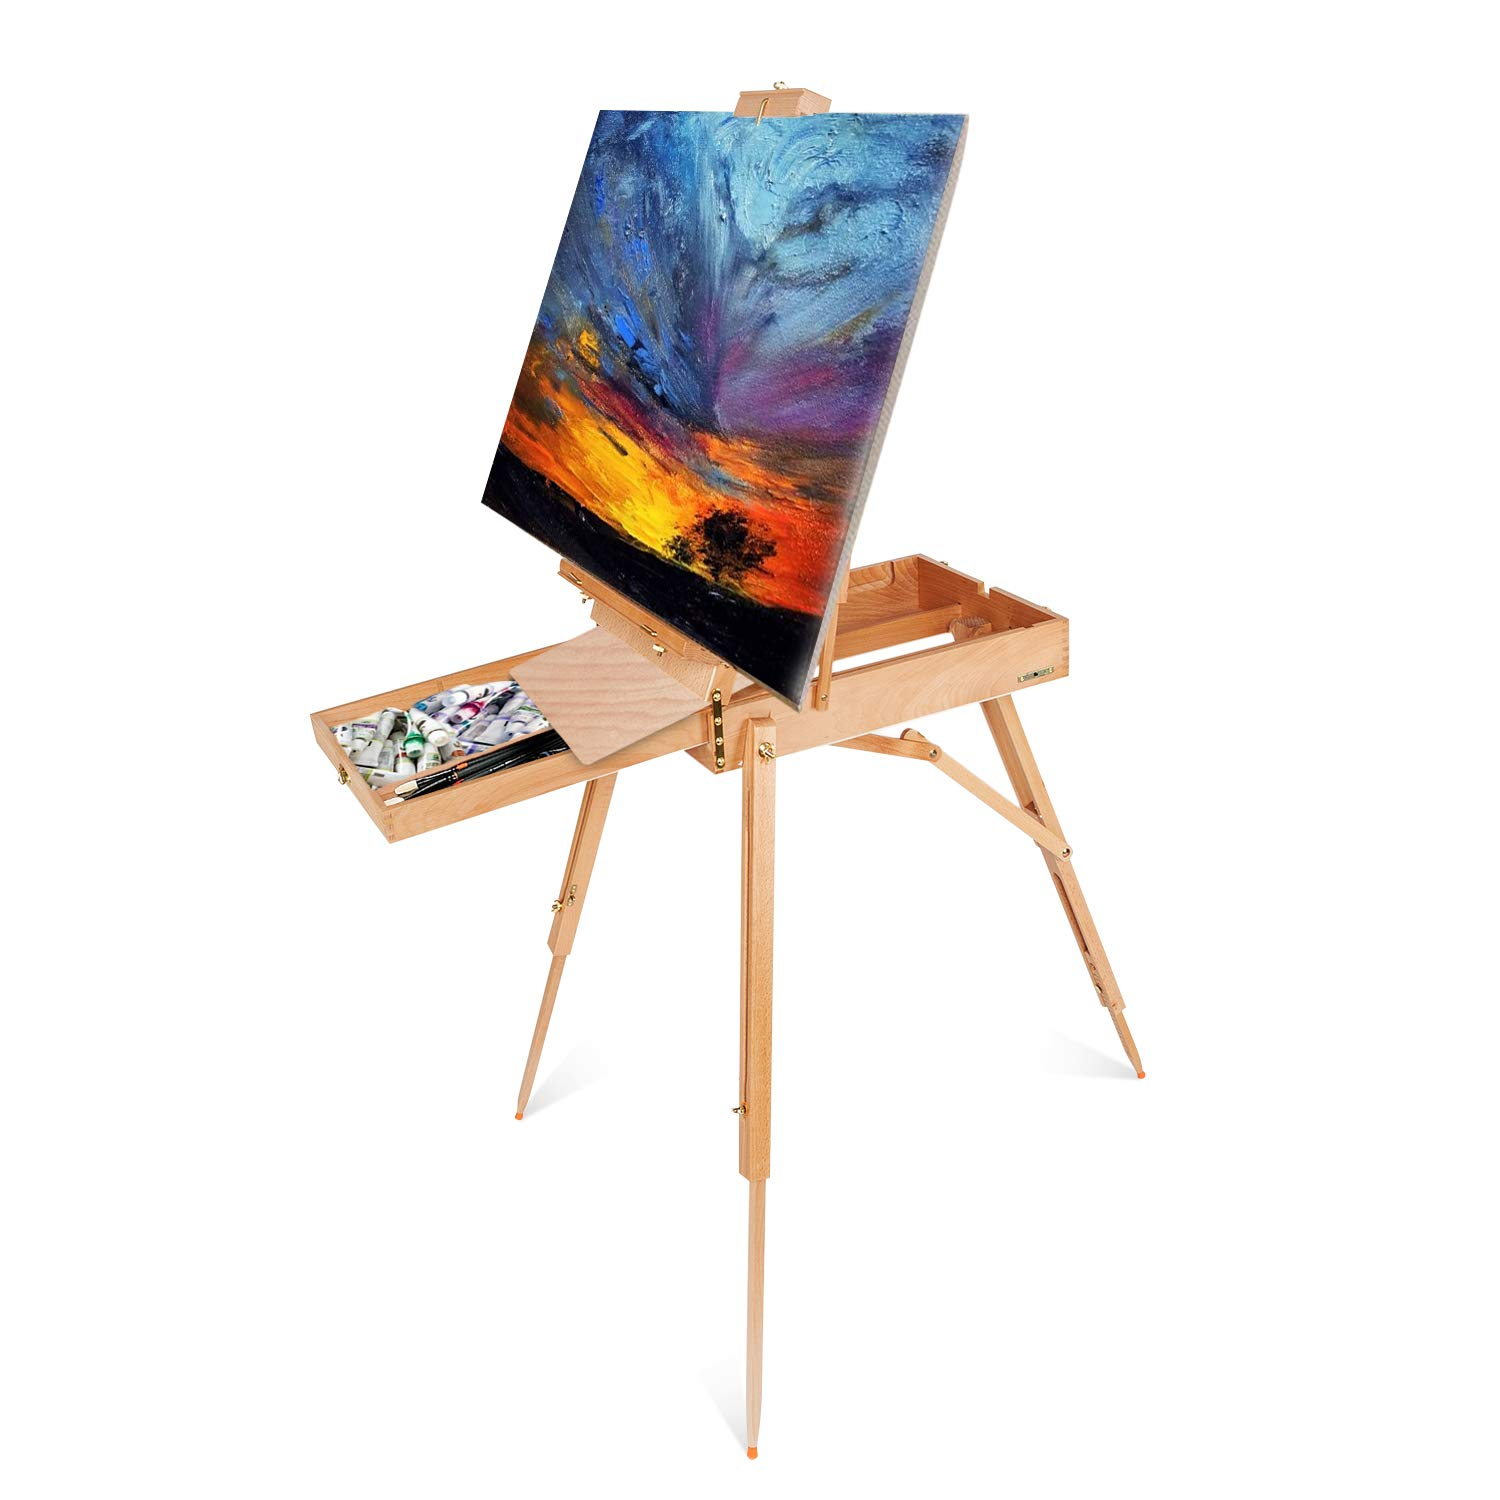 ShowMaven French Style Wooden Art Easel Stand with Sketch Box,Portable Travel Drawing Artist Tripod w/Storage Drawer Case,Triangular Floor Stand,Collapsible Foldable Outdoor,Oil Painting Painters by ShowMaven